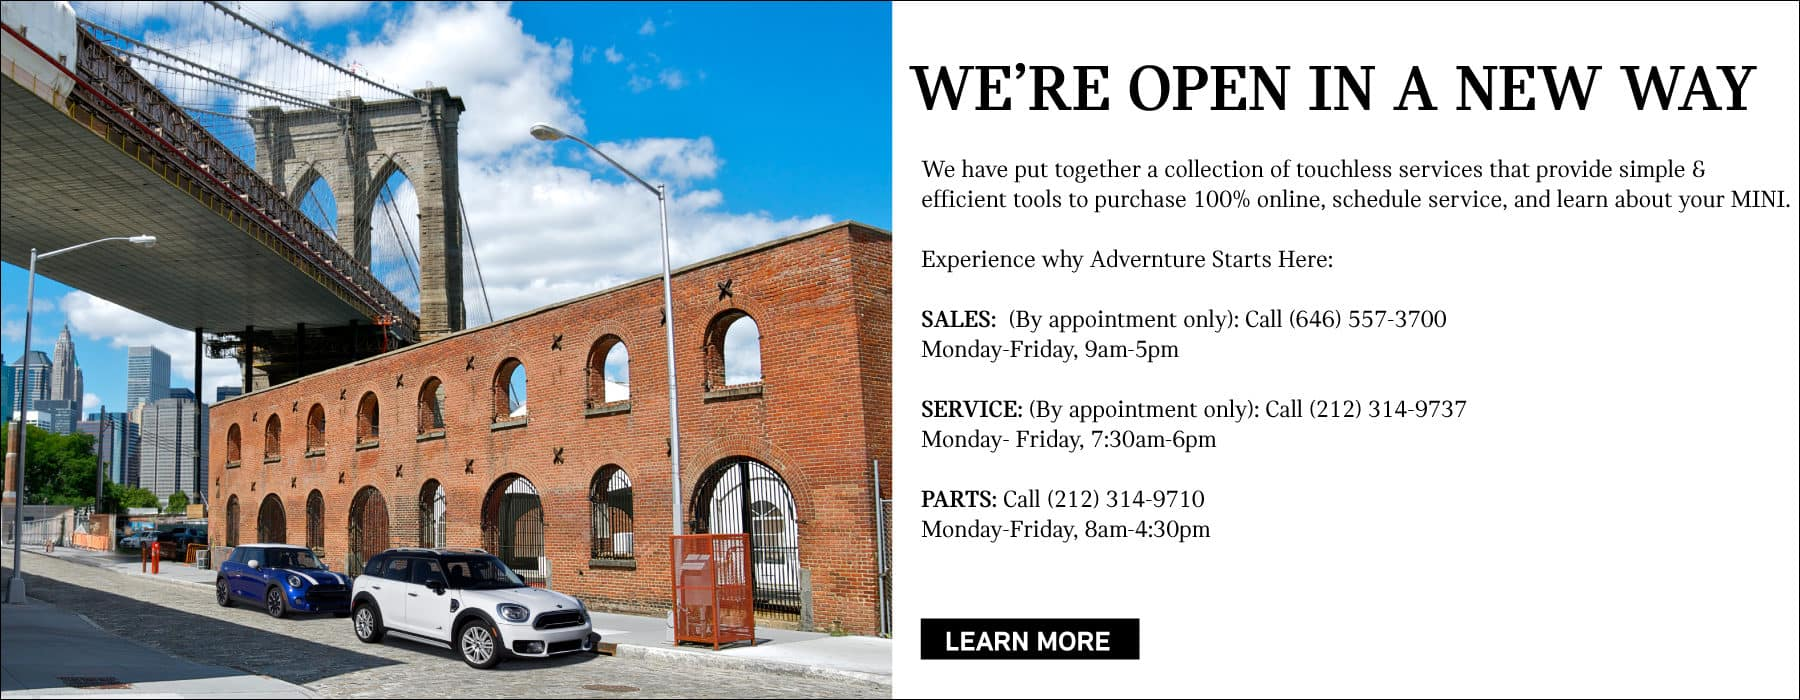 We're open in a new way! We have put together a collection of touchless services that provide simple & Efficient tools to purchase 100% online, schedule service, and learn about your MINI. Experience why Advernture Starts Here: SALES: (By appointment only): Call (646) 557-3700 Monday-Friday, 9am-5pm SERVICE: (By appointment only): Call (212) 314-9737 Monday- Friday, 7:30am-6pm PARTS: Call (212) 314-9710 Monday-Friday, 8am-4:30pm